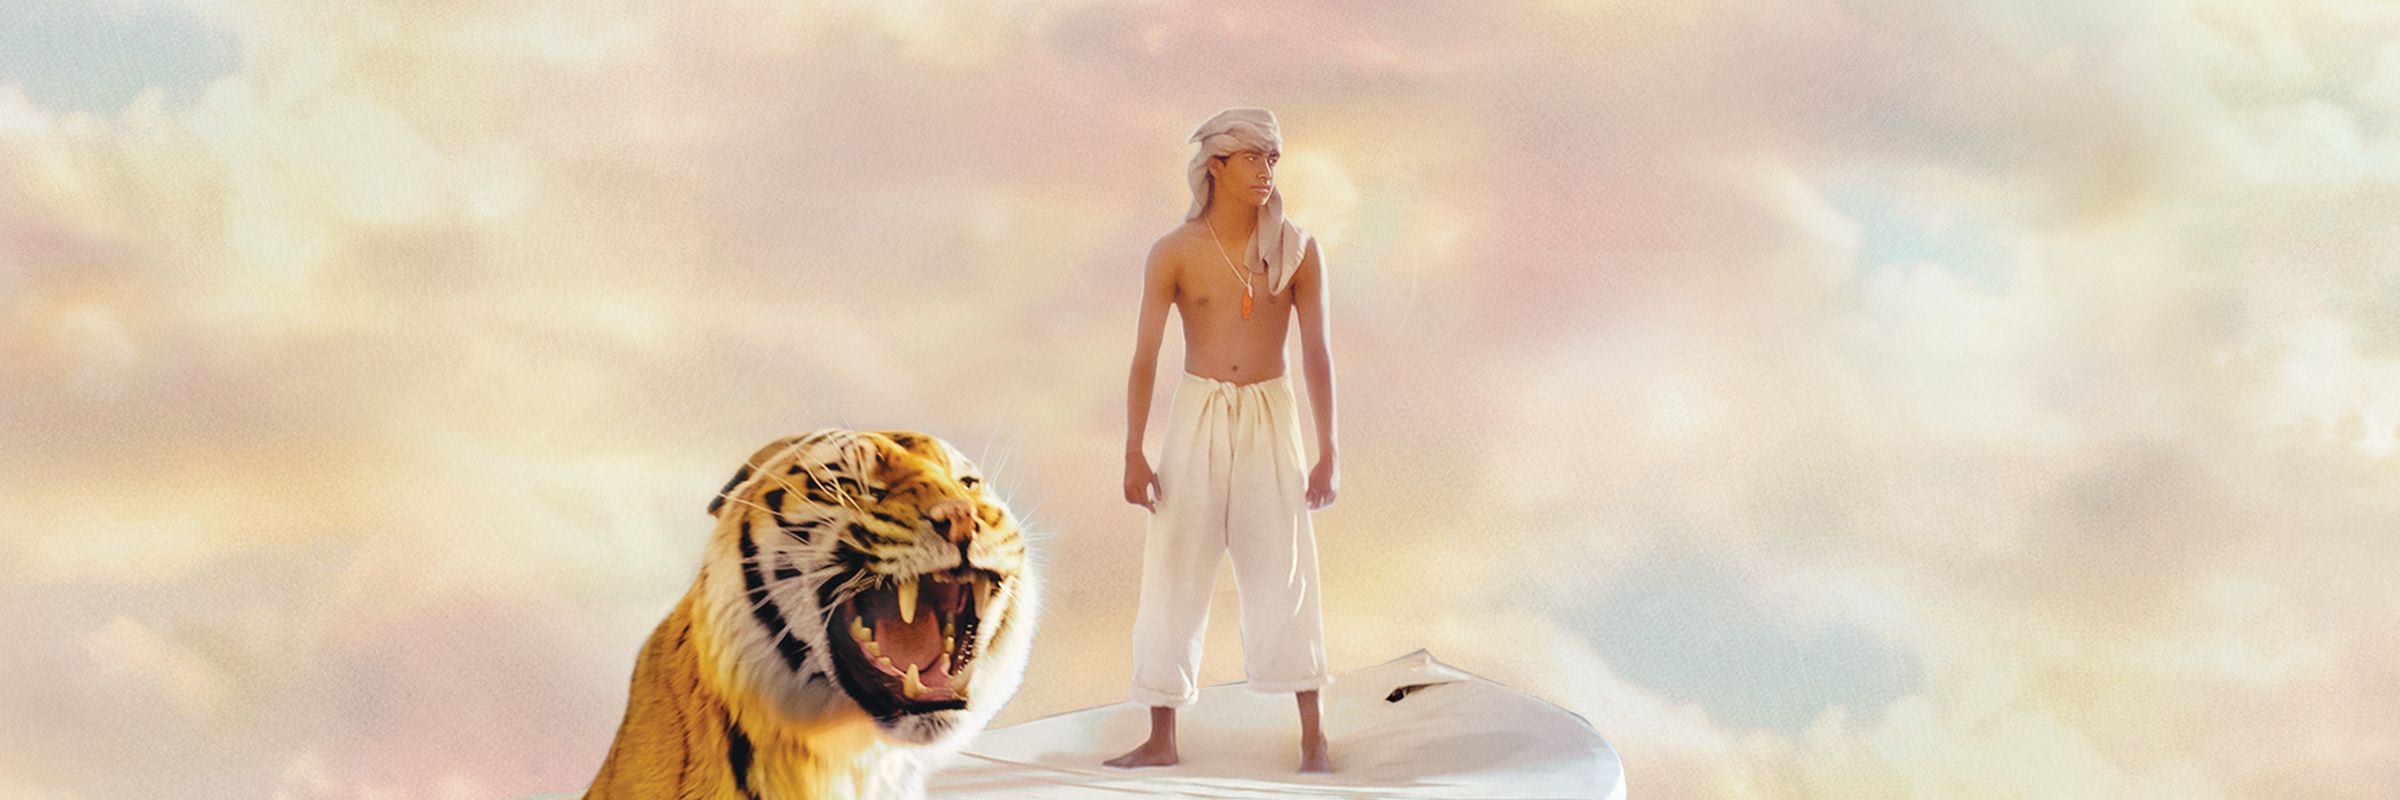 life of pi full movie in english free download